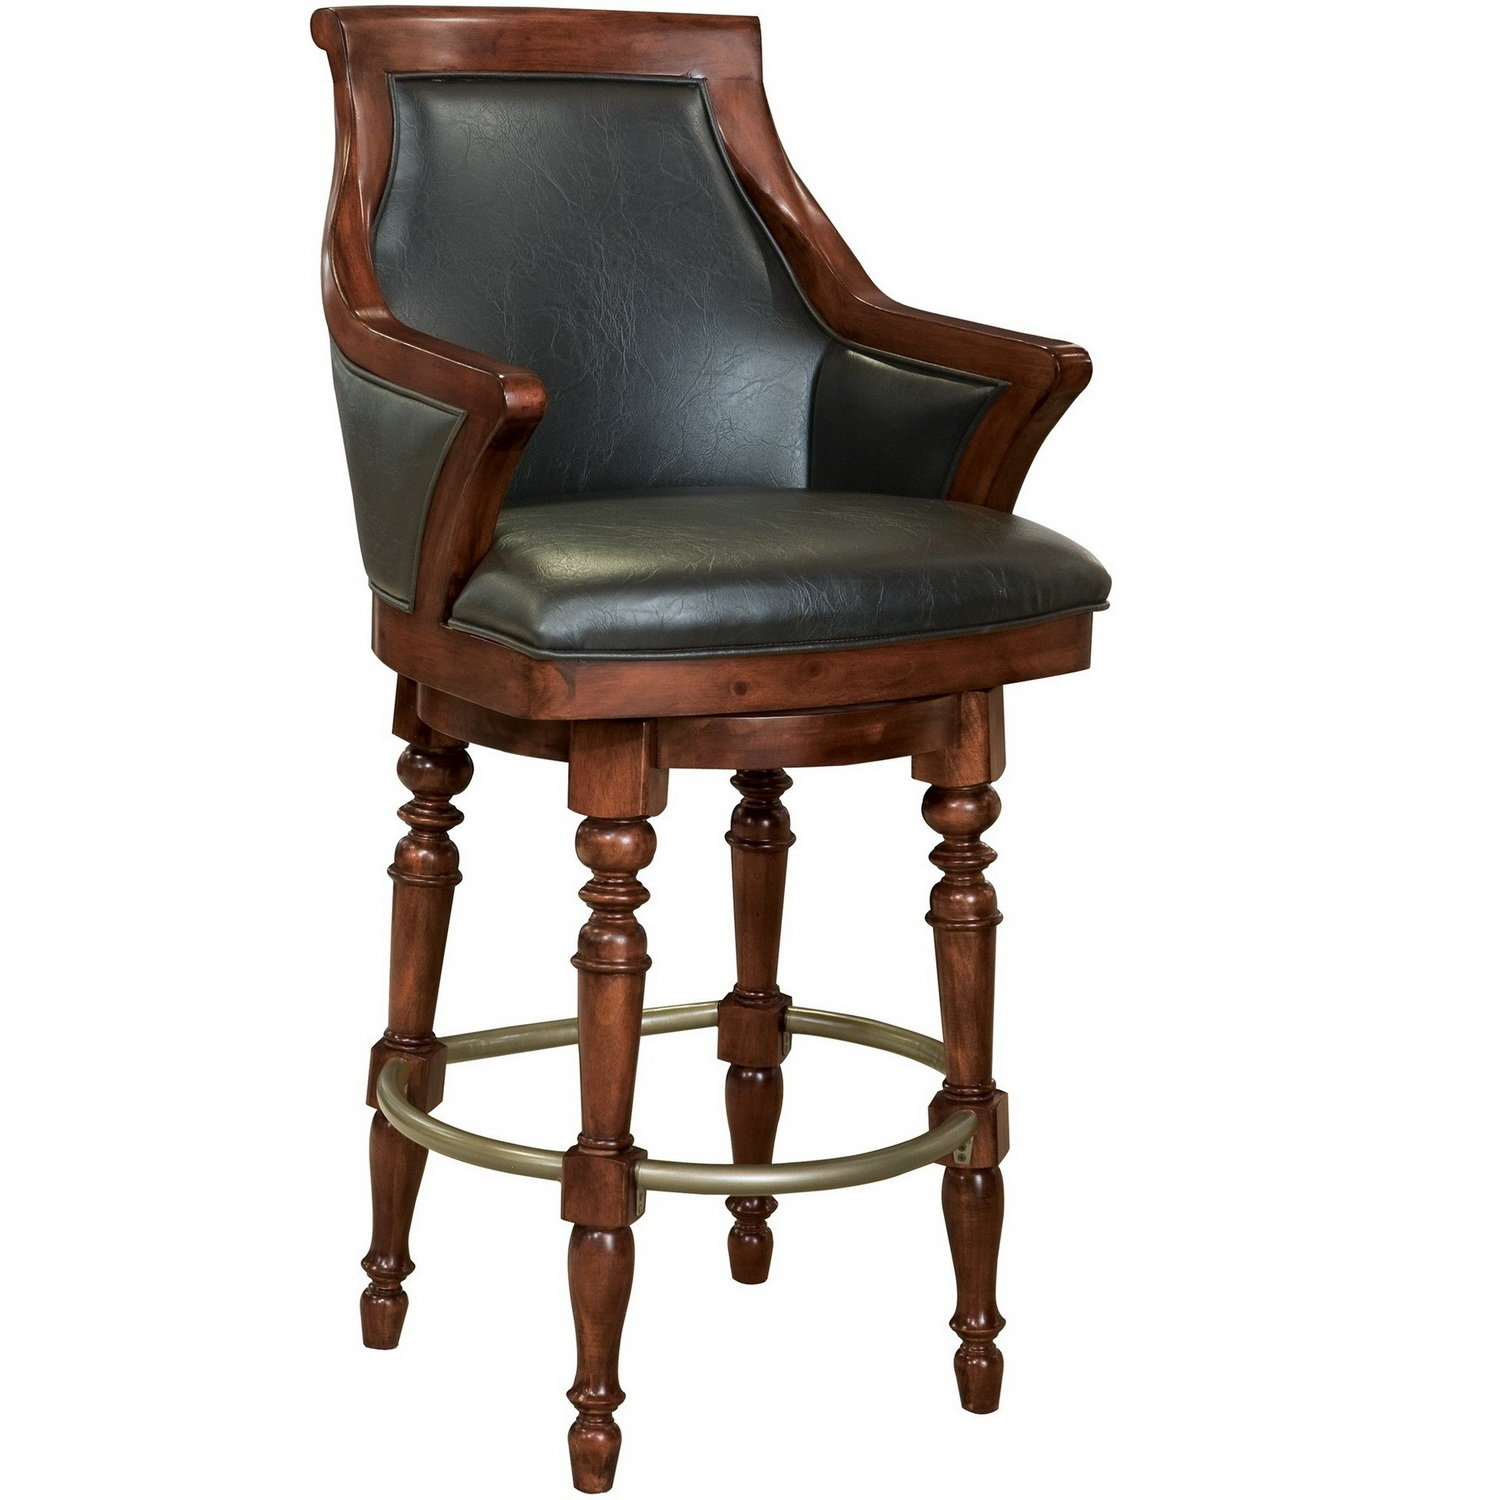 Барный стул Howard Miller Oliver Bar Stool (арт. 697-024)